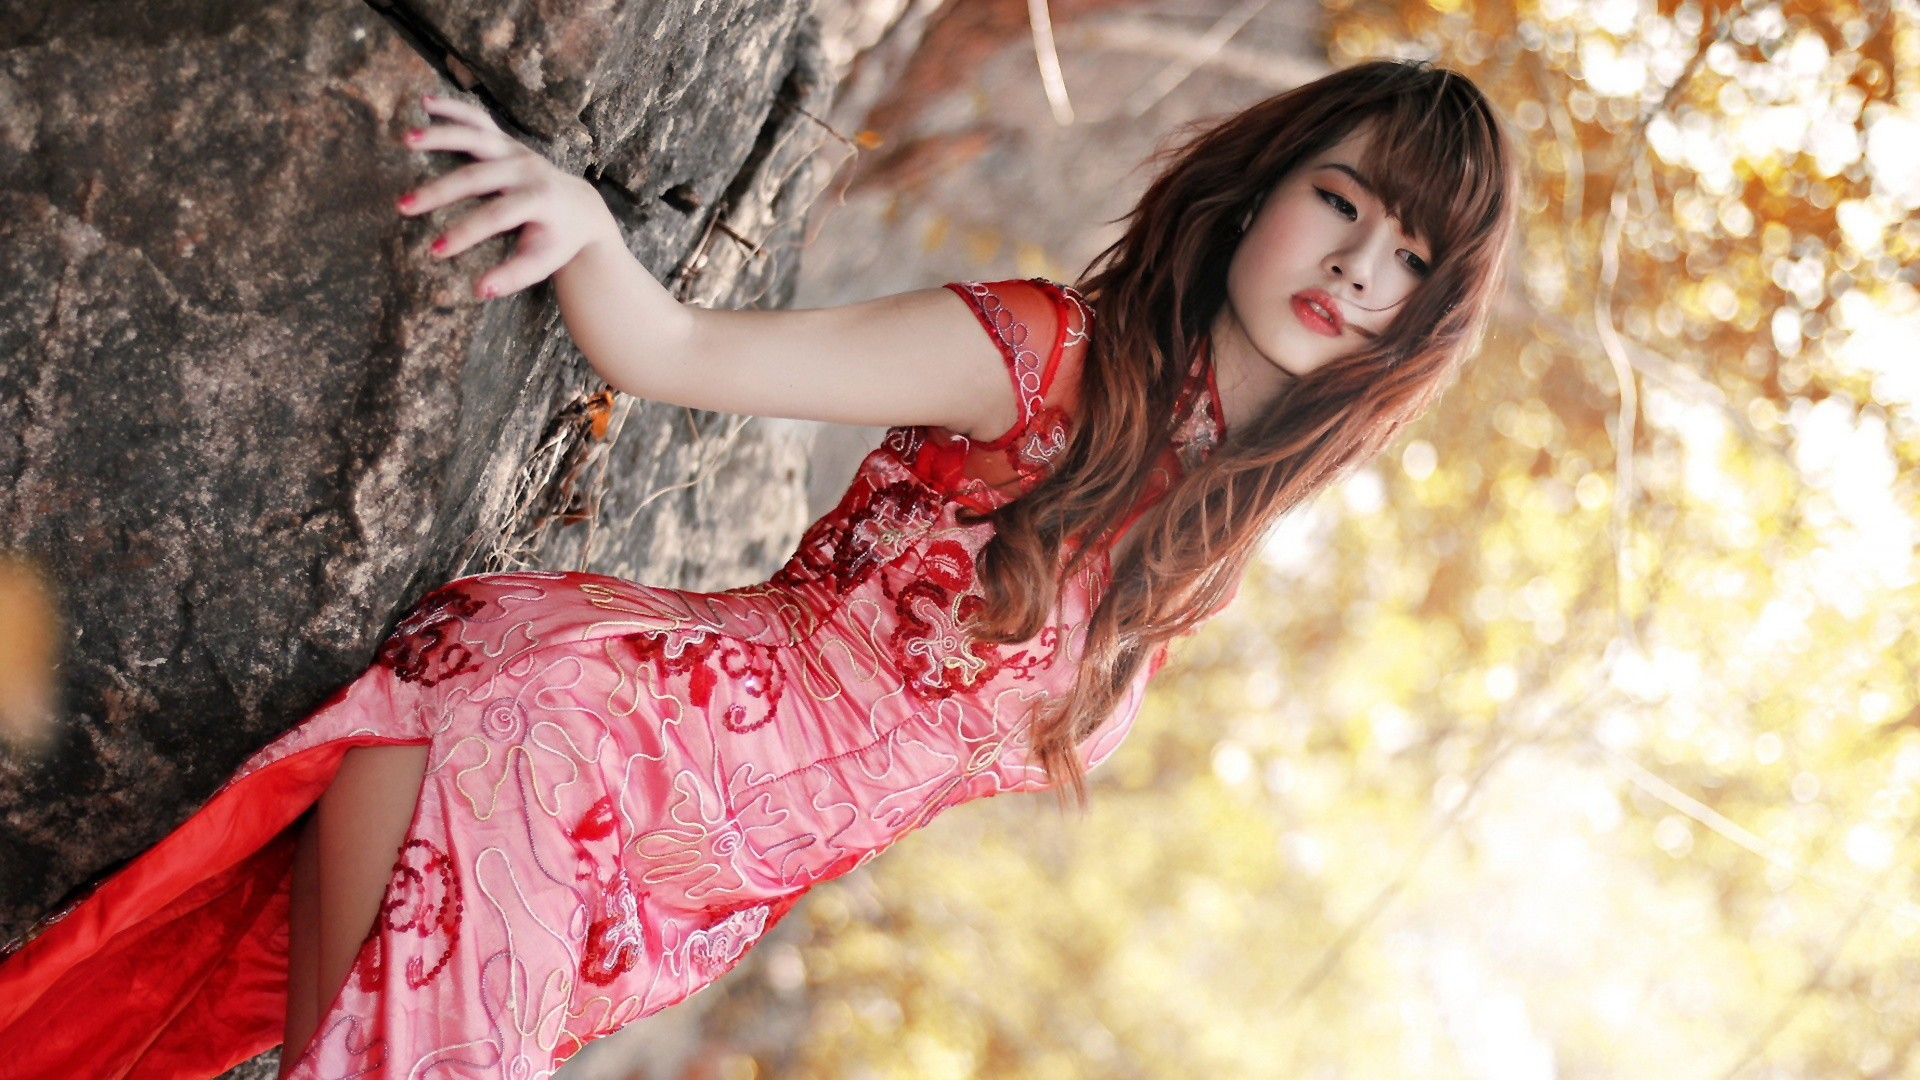 Asian Girls Wallpapers HD Images